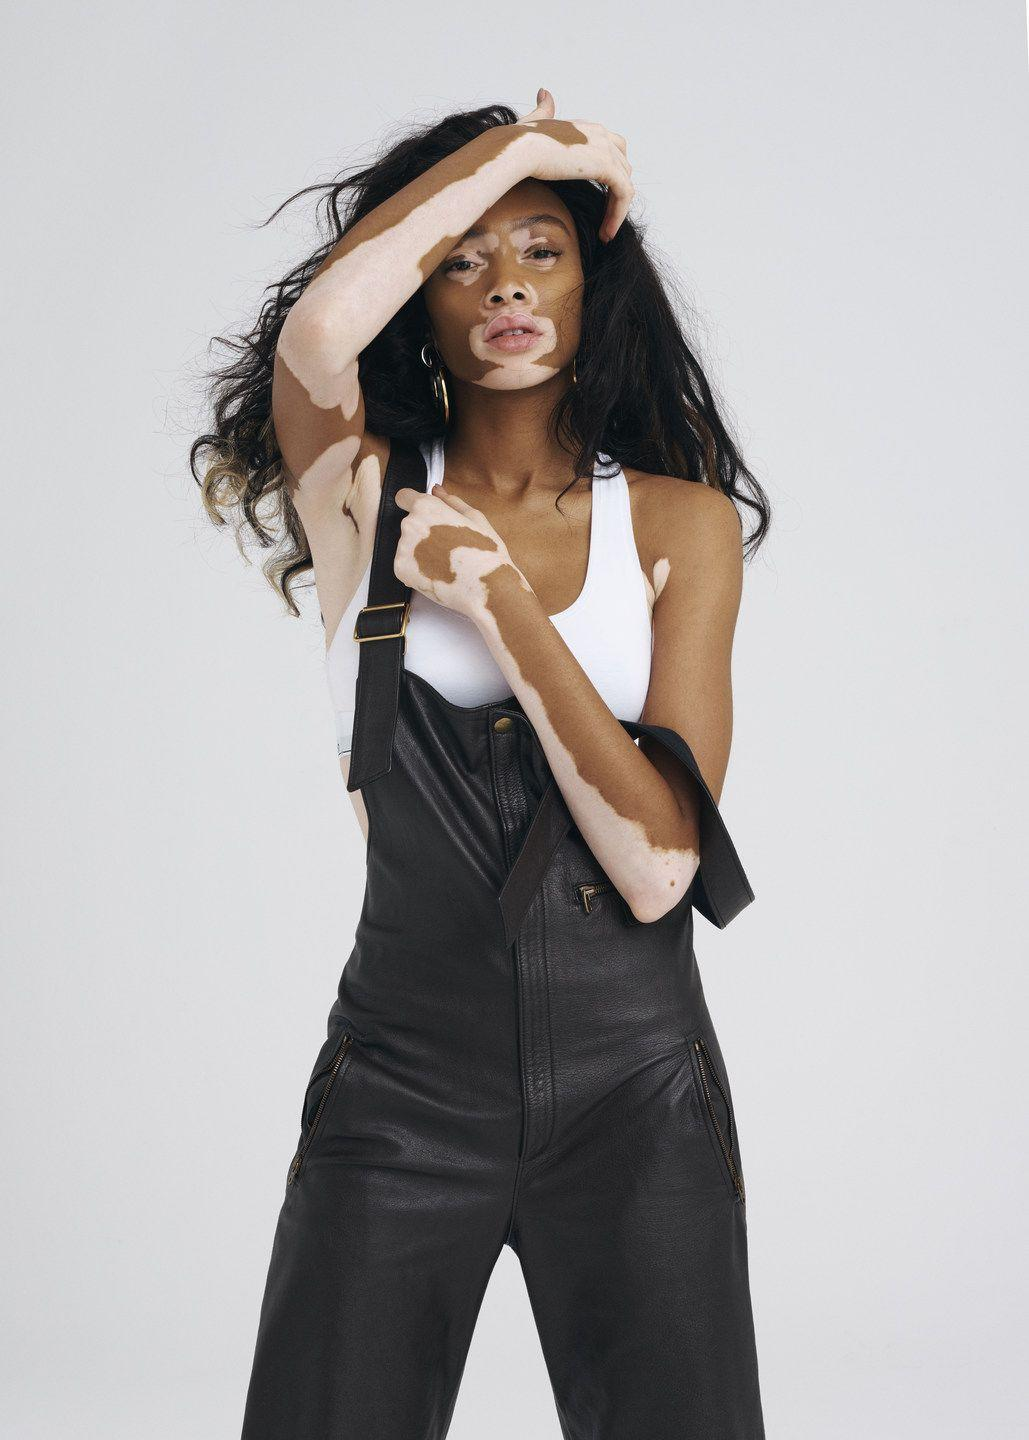 Winnie Harlow in Grazia UK Nov 28th, 2016 by Mark Rabadan